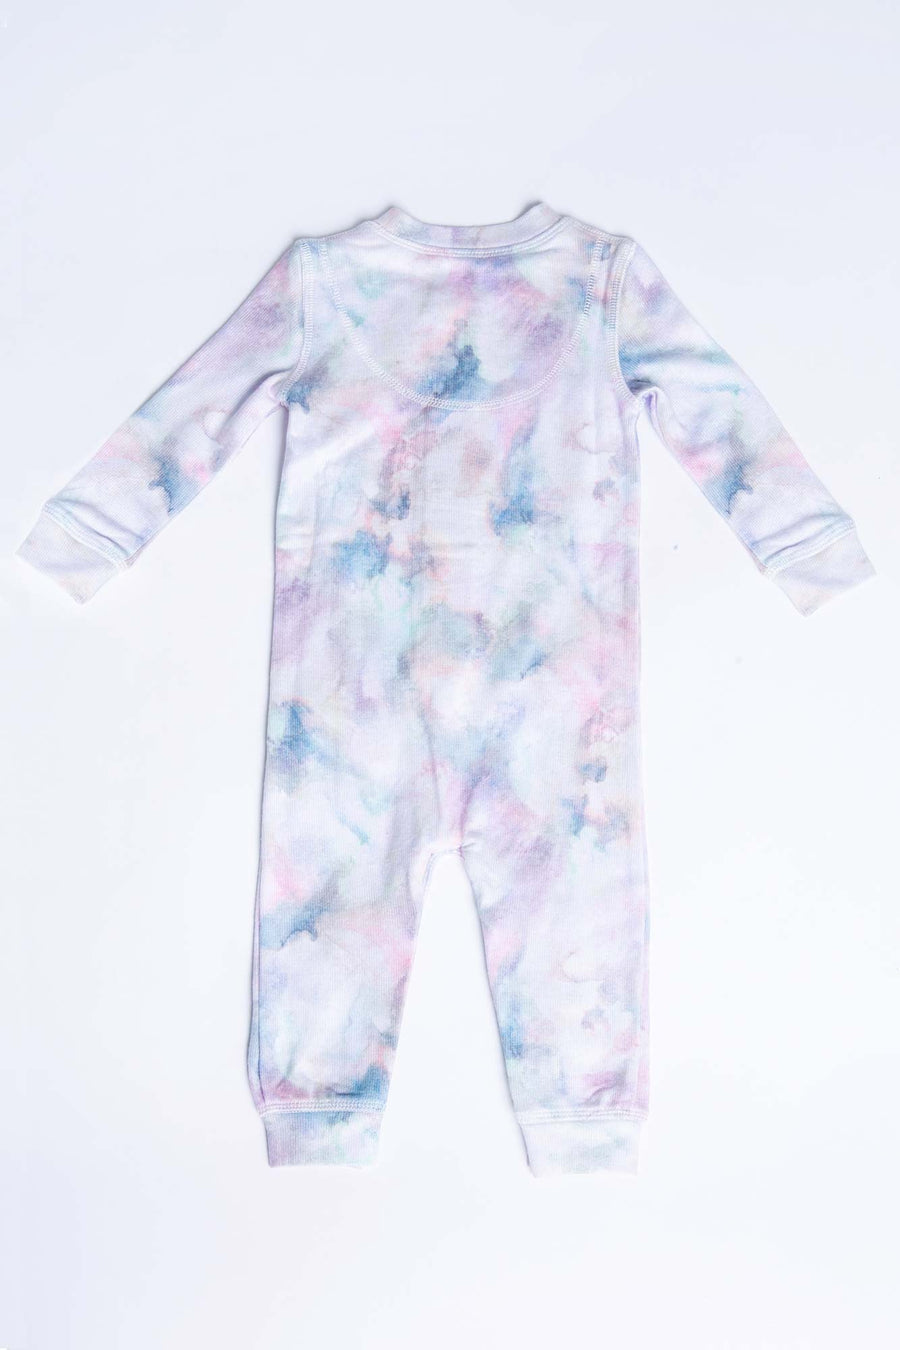 PEACHY MARBLE TIE DYE ROMPER - INFANT